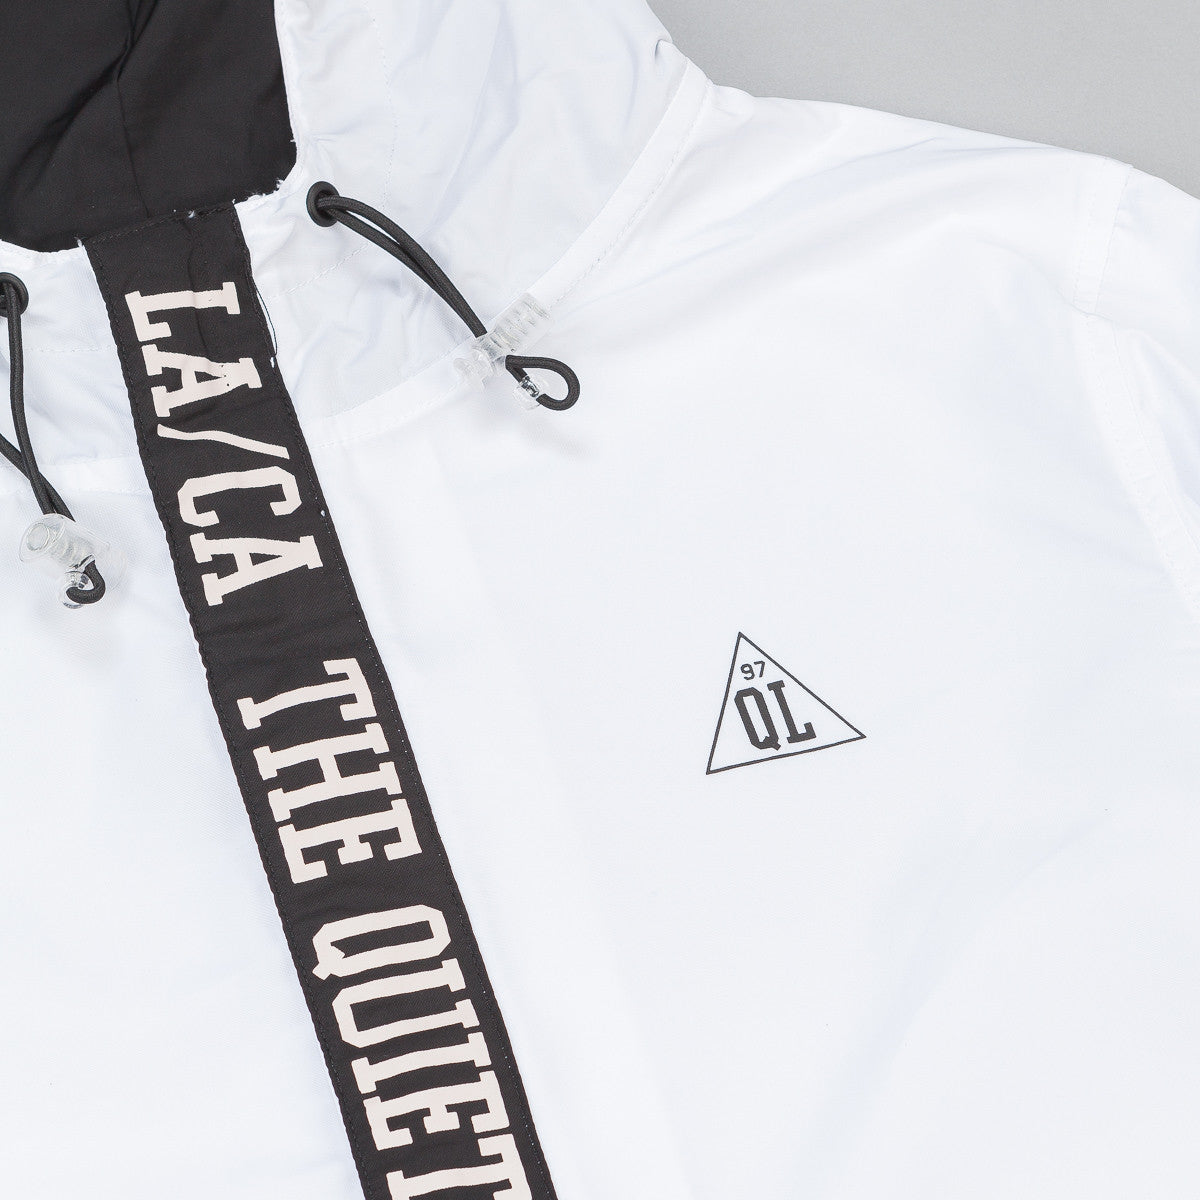 The Quiet Life City Limits Jacket - Black / White